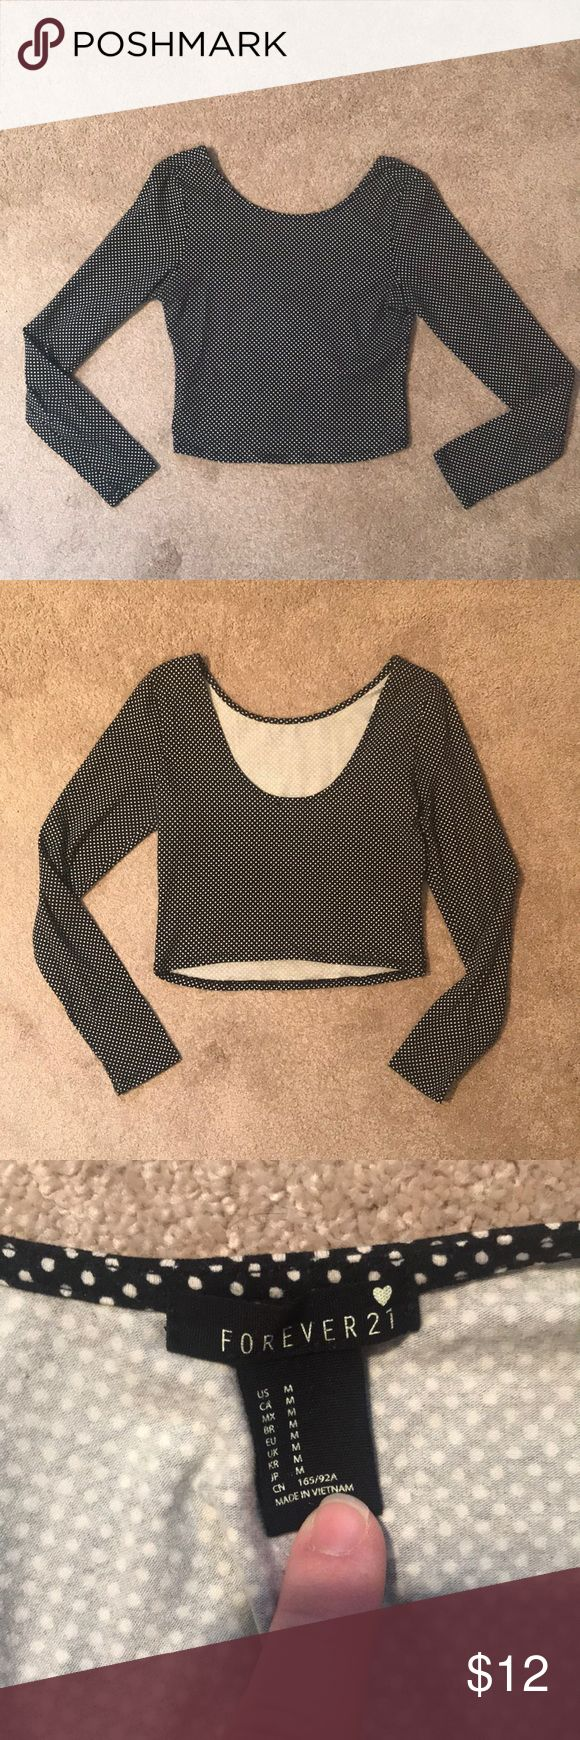 Long sleeve polka dot crop top Super cute tight fitting crop top, looks adorable with high waisted skirts Forever 21 Tops Crop Tops